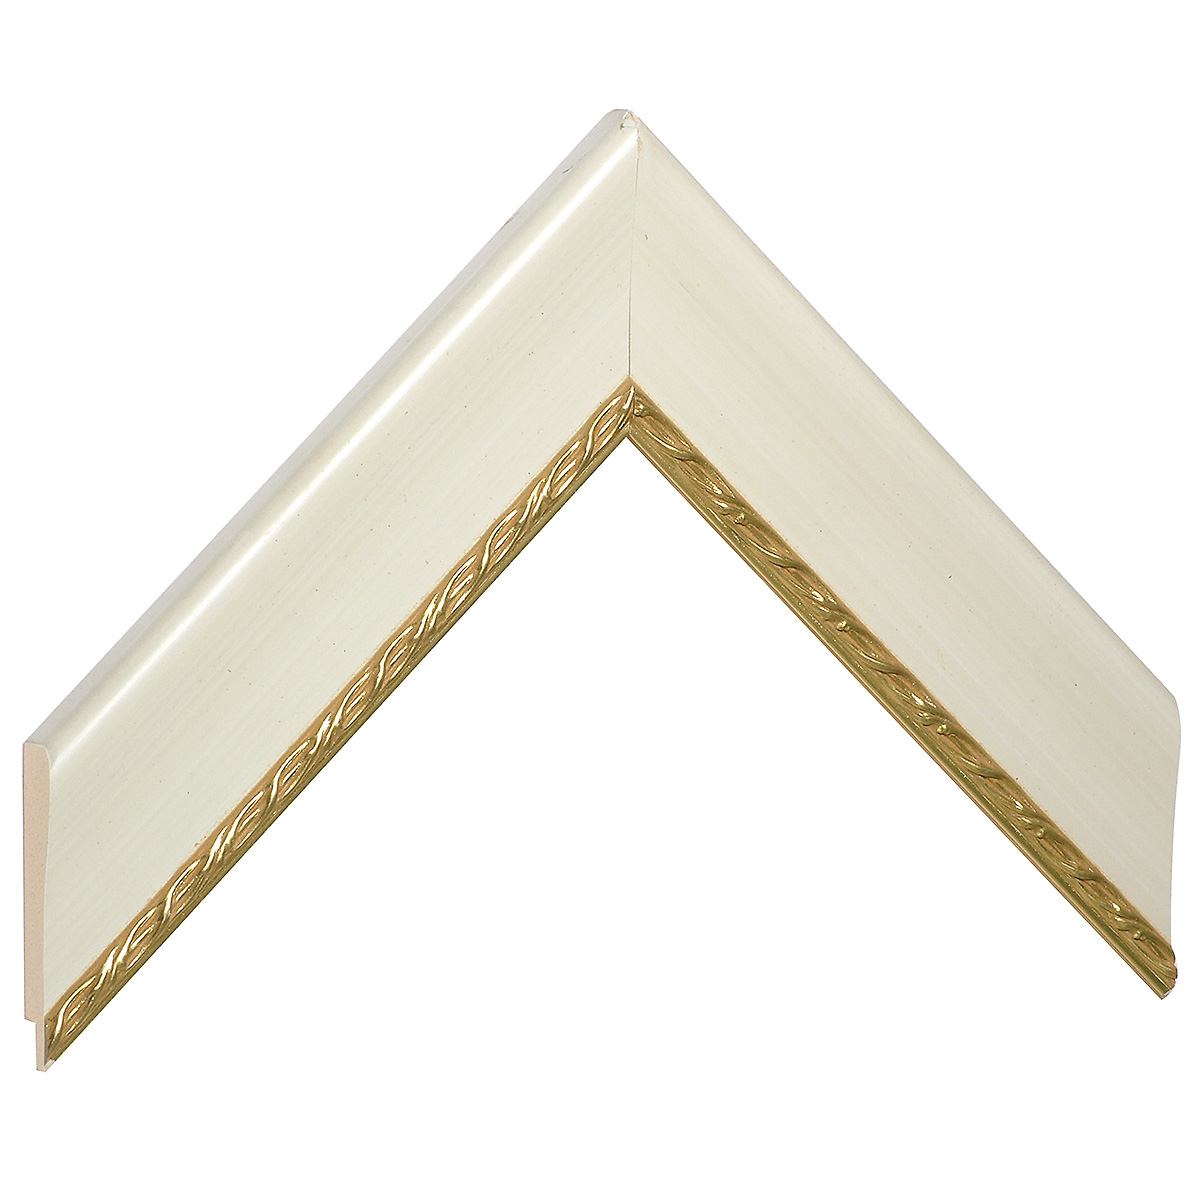 Liner pine 40mm - with gold decoration